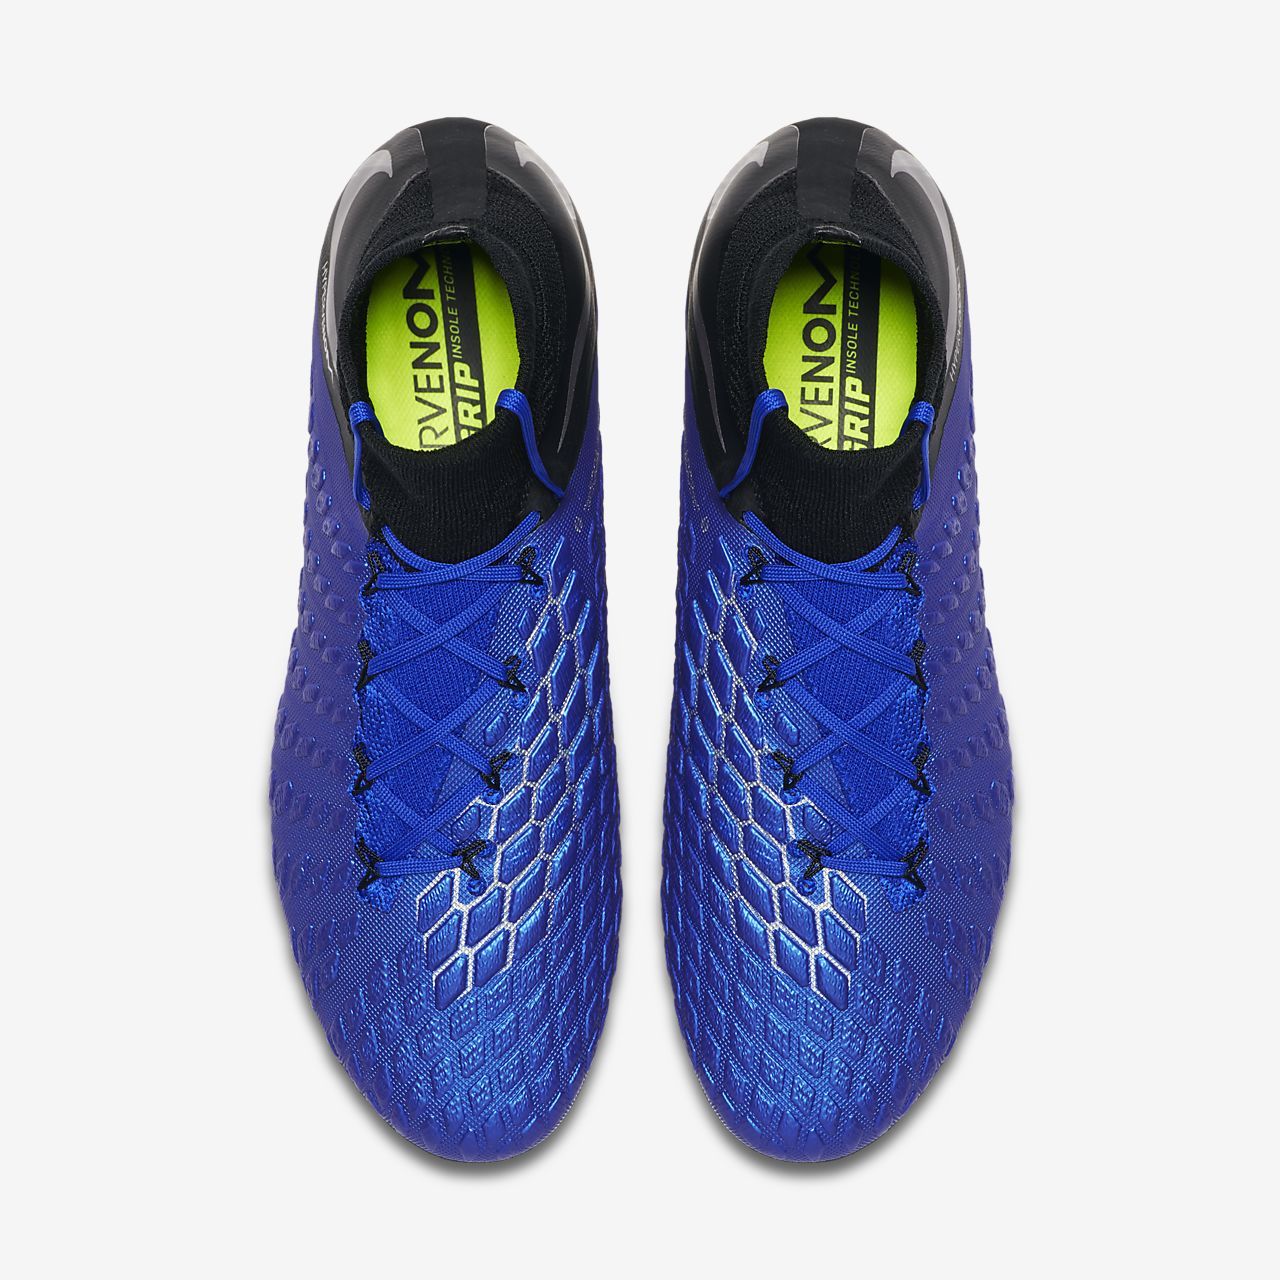 size 40 94189 6b3c7 ... Nike Hypervenom III Elite Dynamic Fit Anti-Clog SG-PRO Soft-Ground  Football